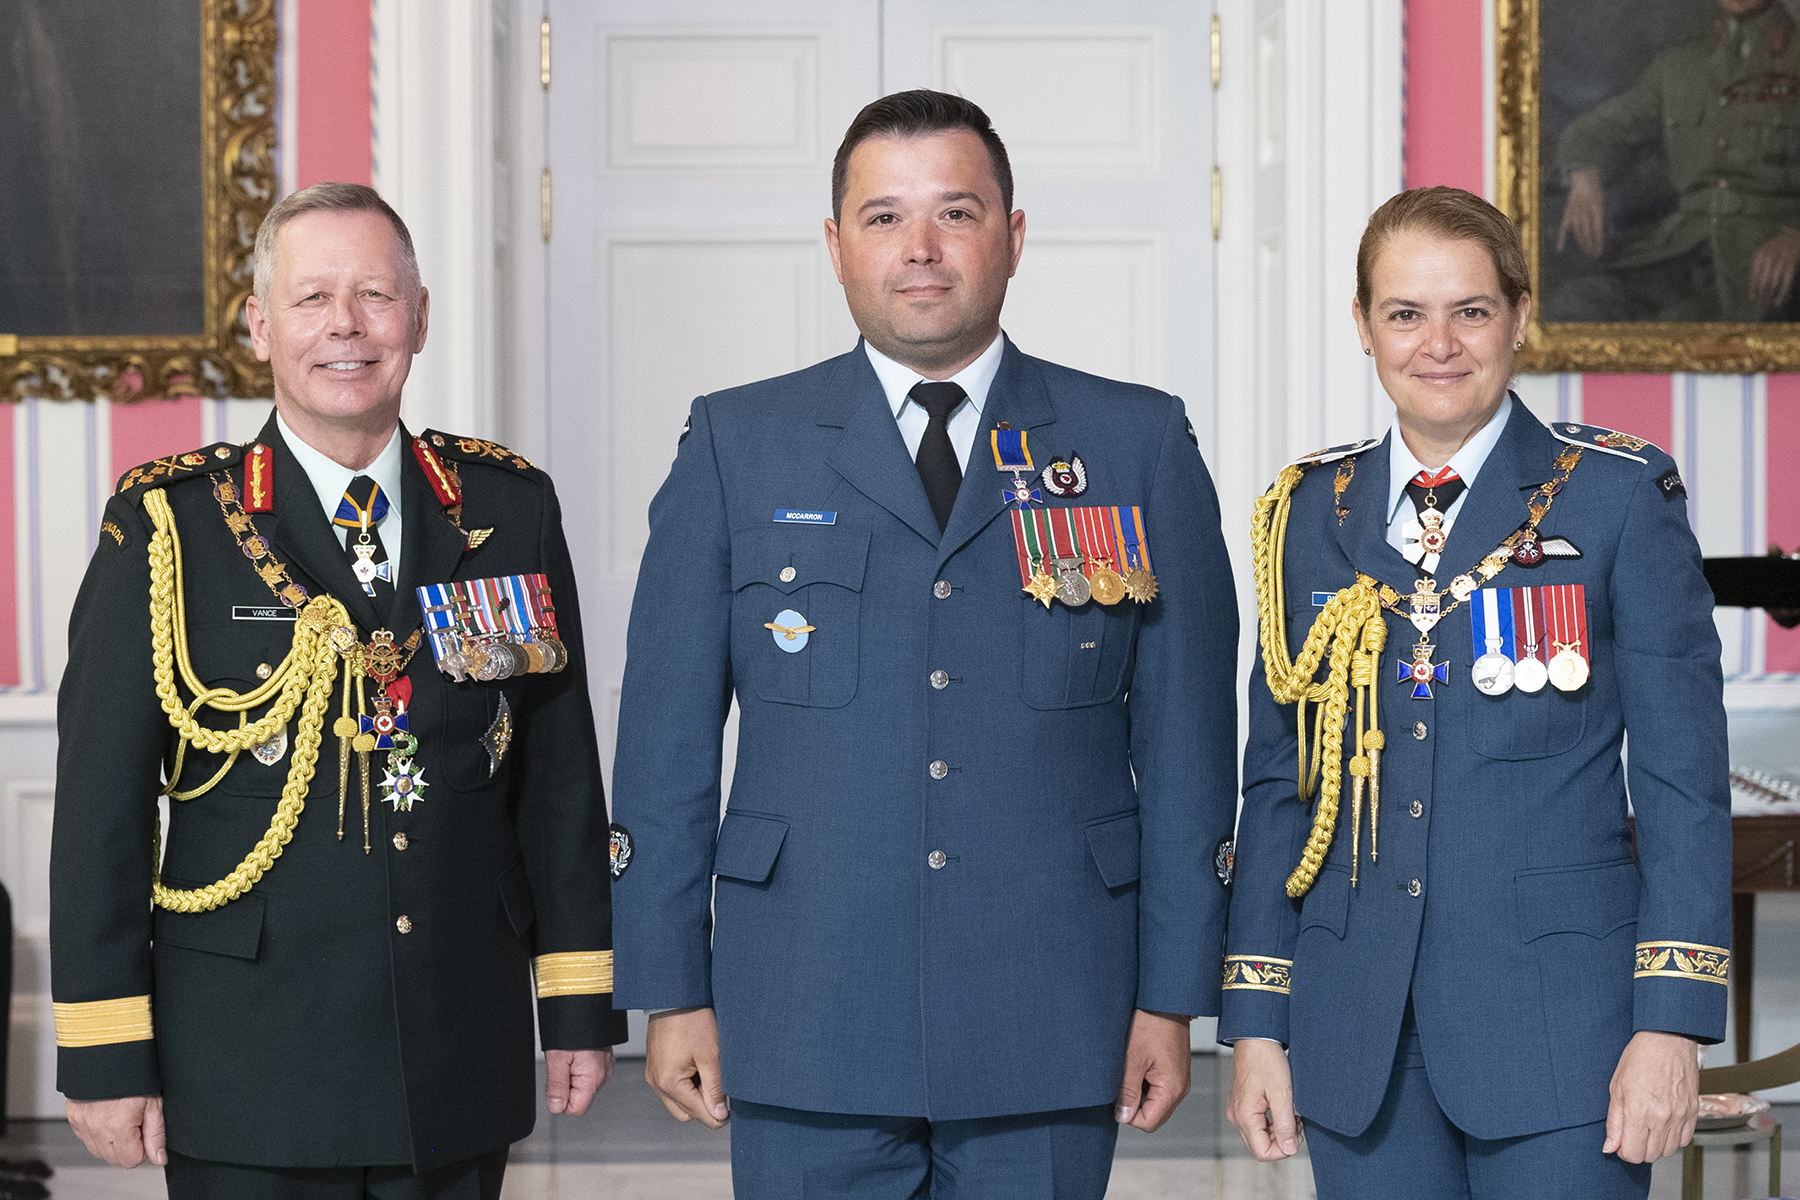 Master Warrant Officer James Richard McCarron, M.M.M., C.D. (centre) stands with Governor-General Julie Payette and Chief of the Defence Staff General Jonathan Vance after receiving the Member insignia of the Order of Military Merit from the Governor General. PHOTO: Sergeant Johanie Maheu, Rideau Hall, © OSGG, GG05-2019-0118-047